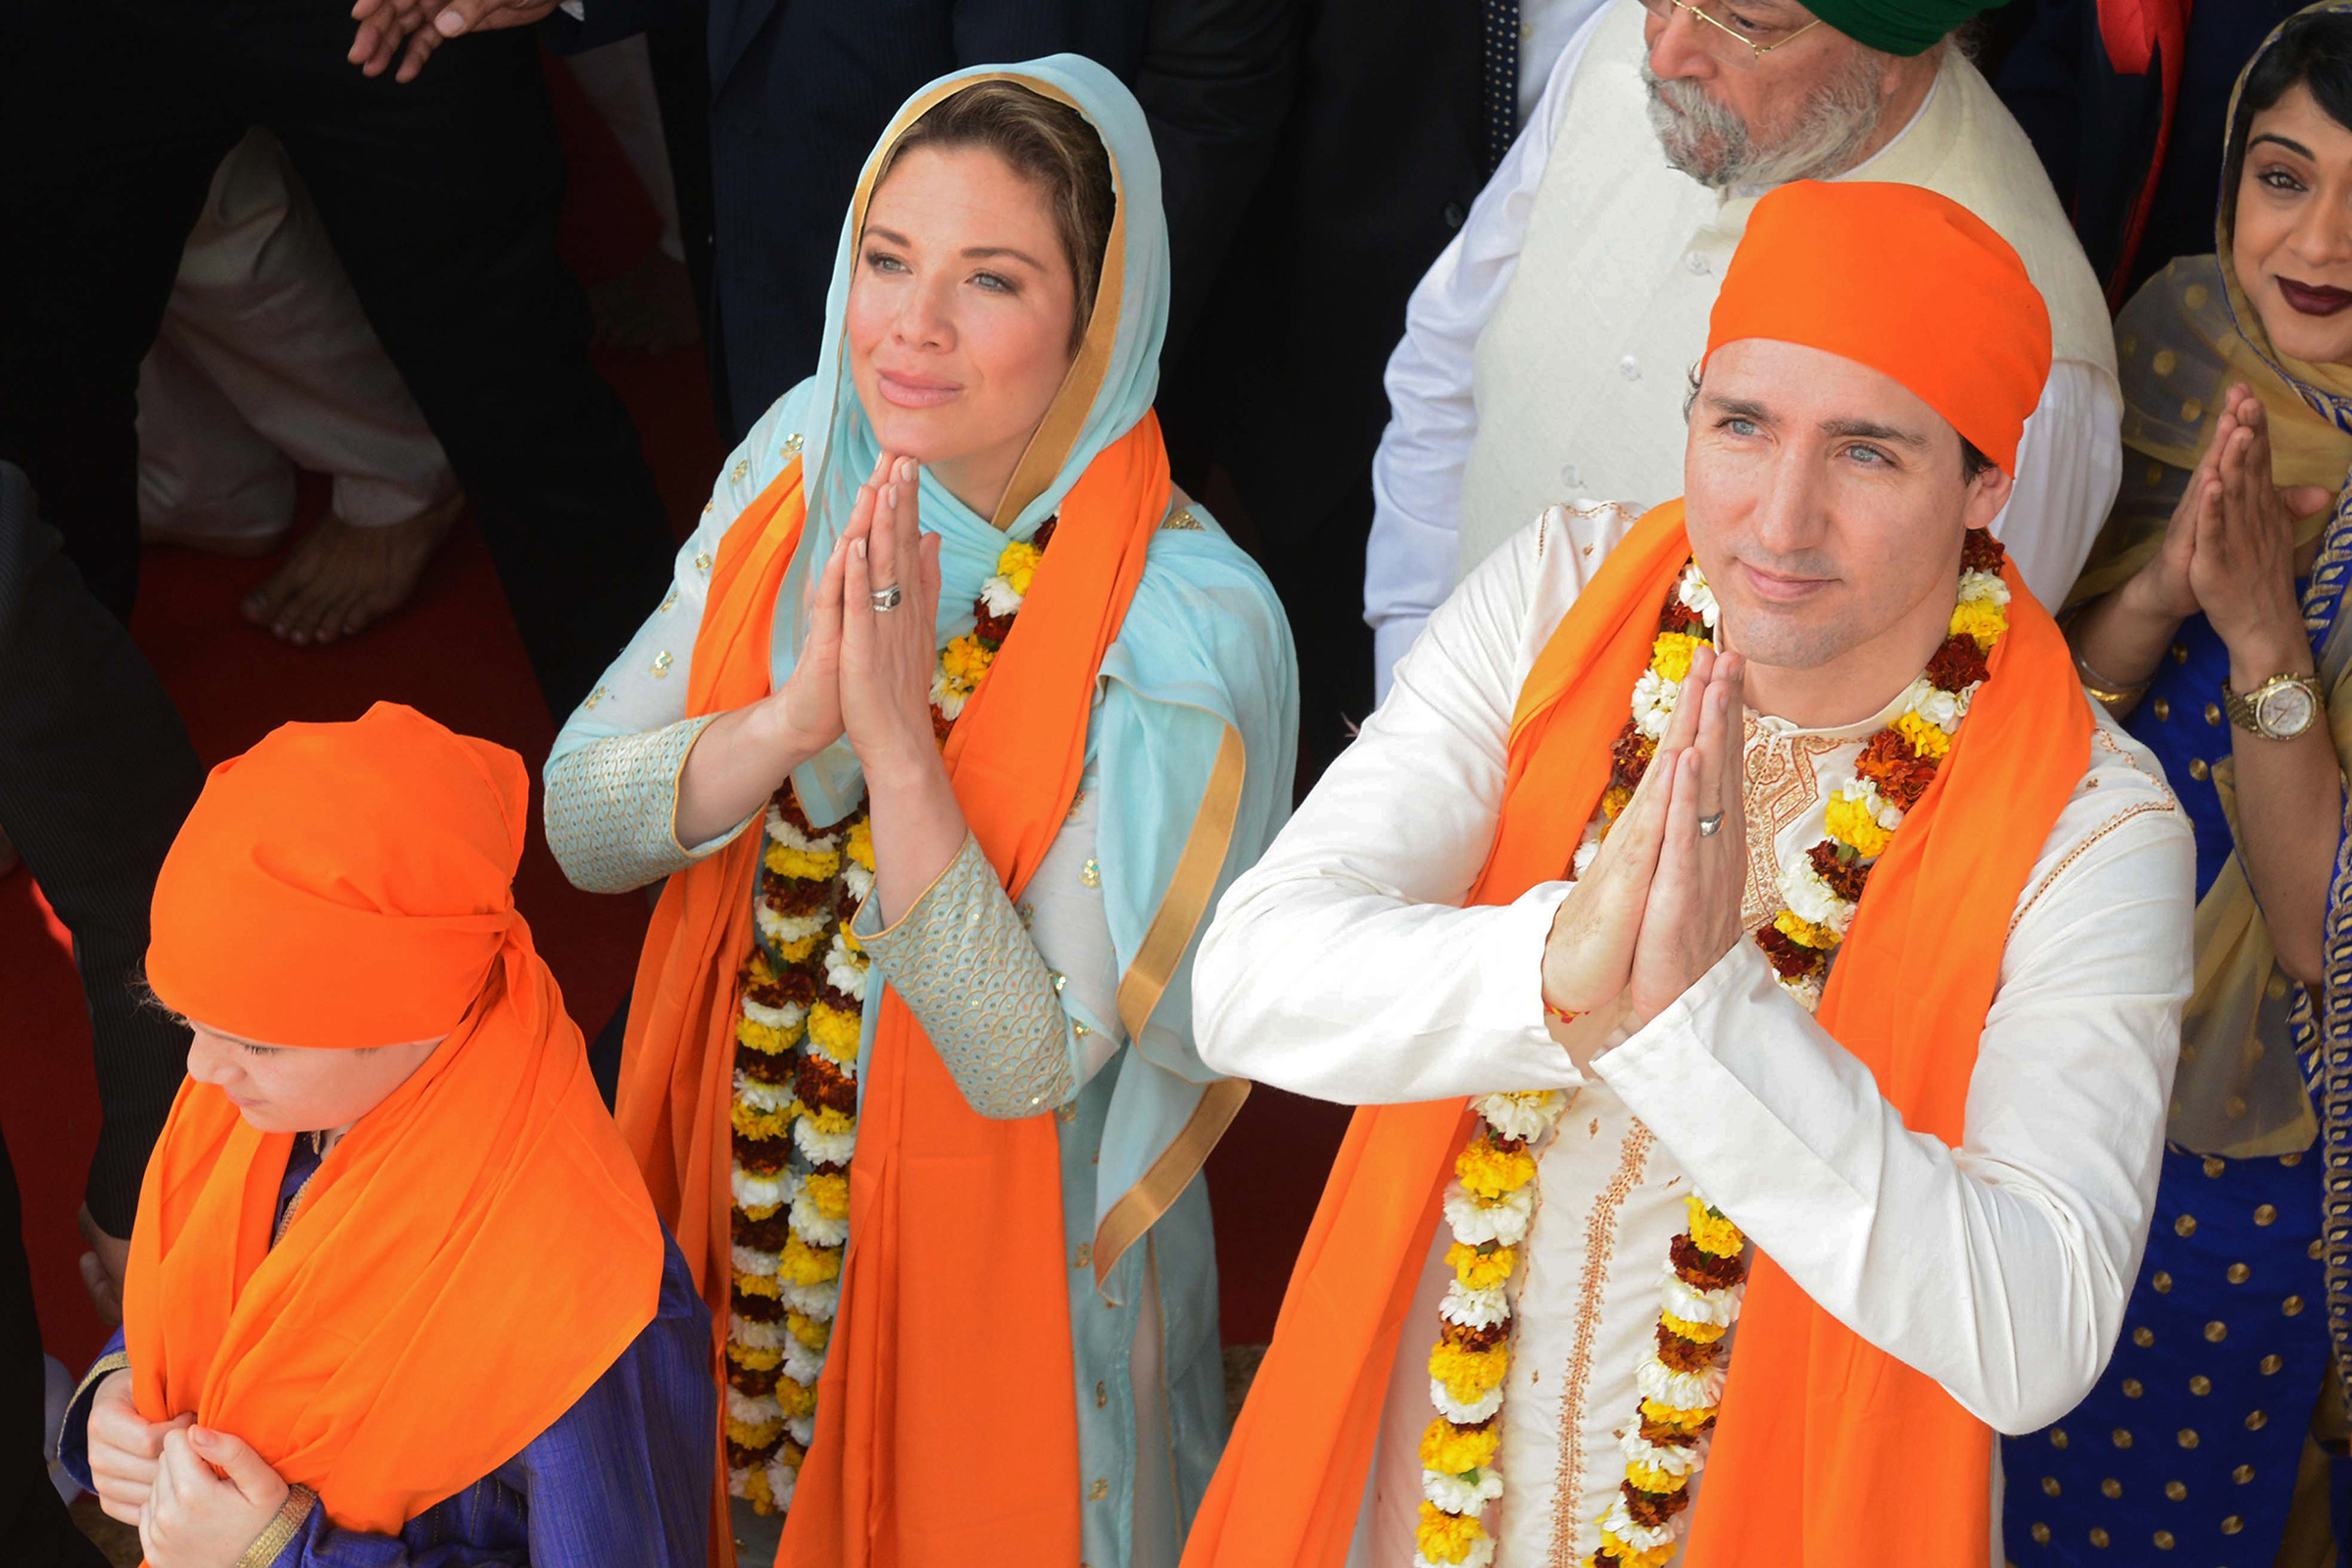 Canadian Prime Minister Justin Trudeau and wife Sophie Gregoire pay their respects at the SSikh Golden Temple in Amritsar on Feb. 21, 2018.